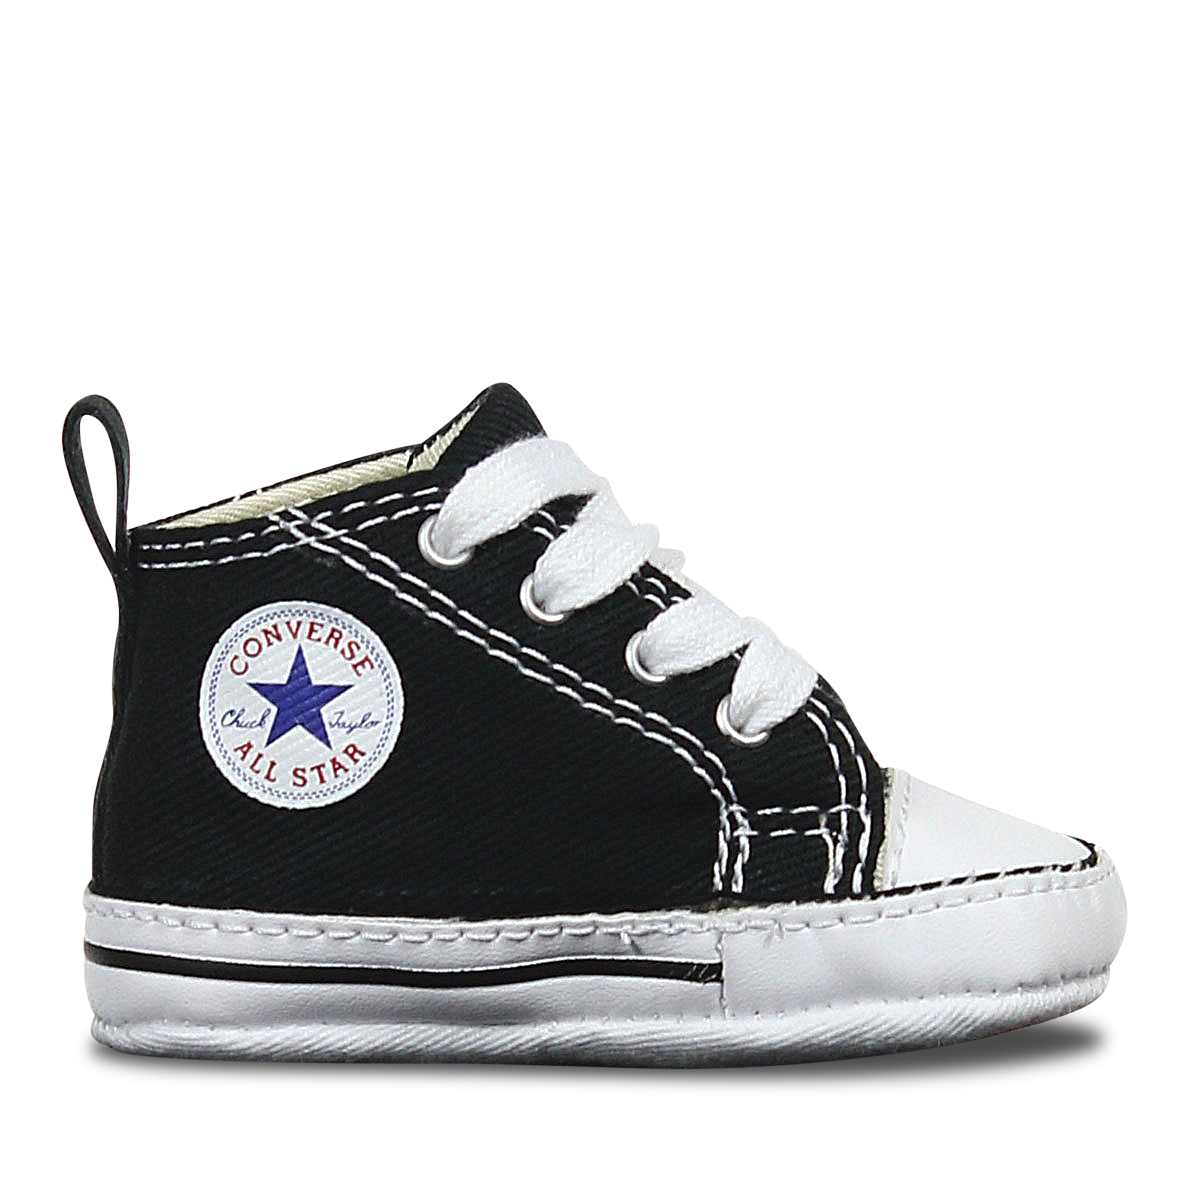 Converse clipart high top converse. Inspirational pictures of baby